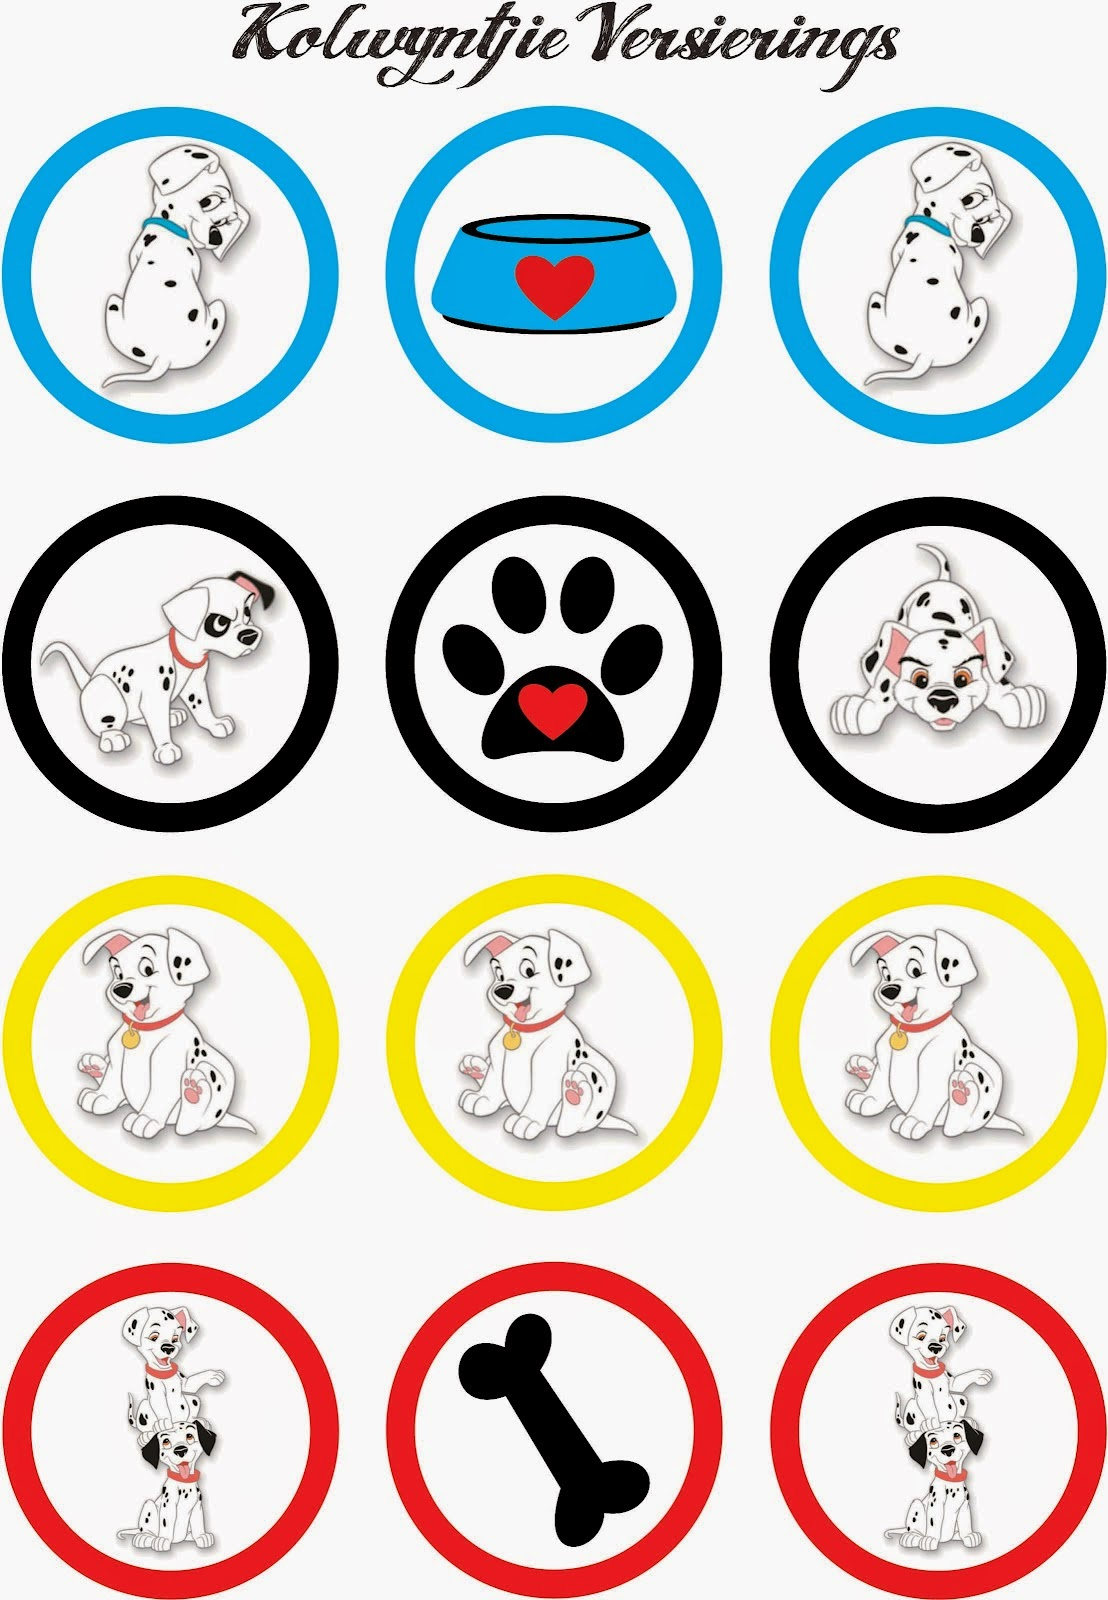 101 Dalmatians Free Printable Mini Kit. | Is it for PARTIES? Is it FREE? Is it CUTE? Has QUALITY ...